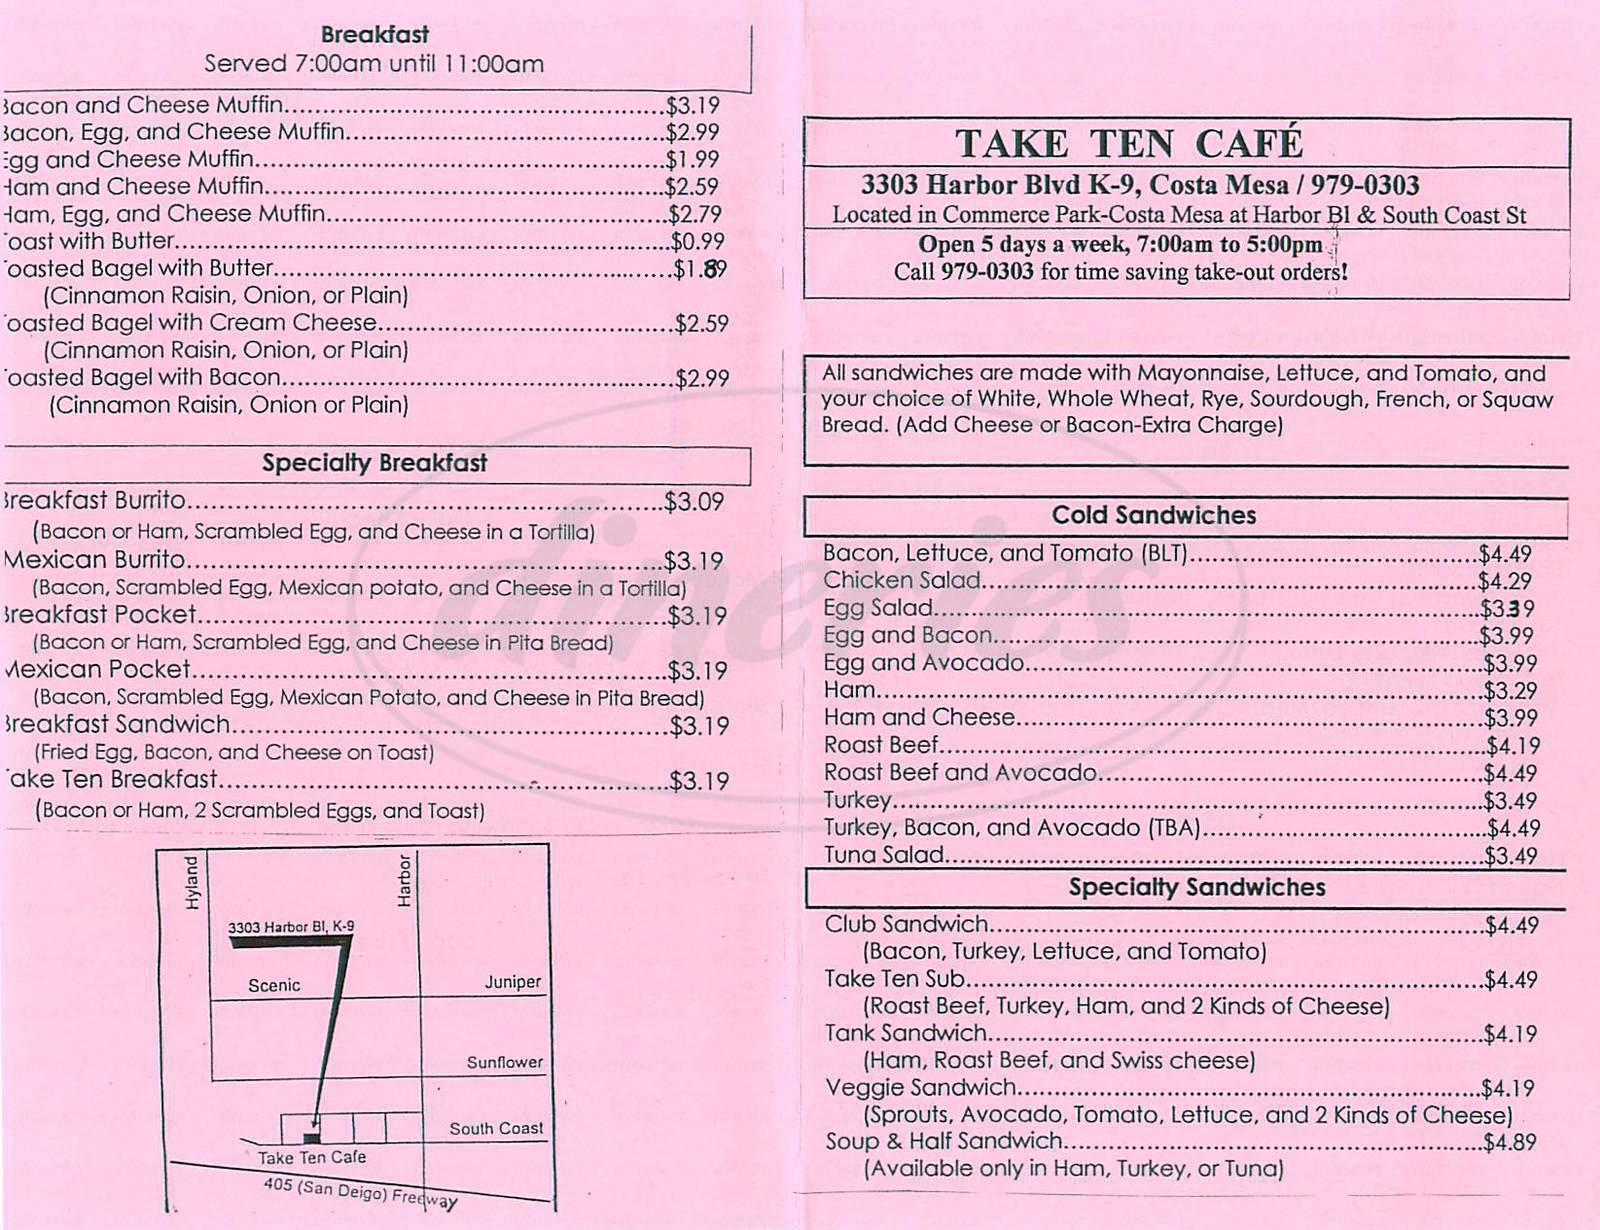 menu for Take Ten Café